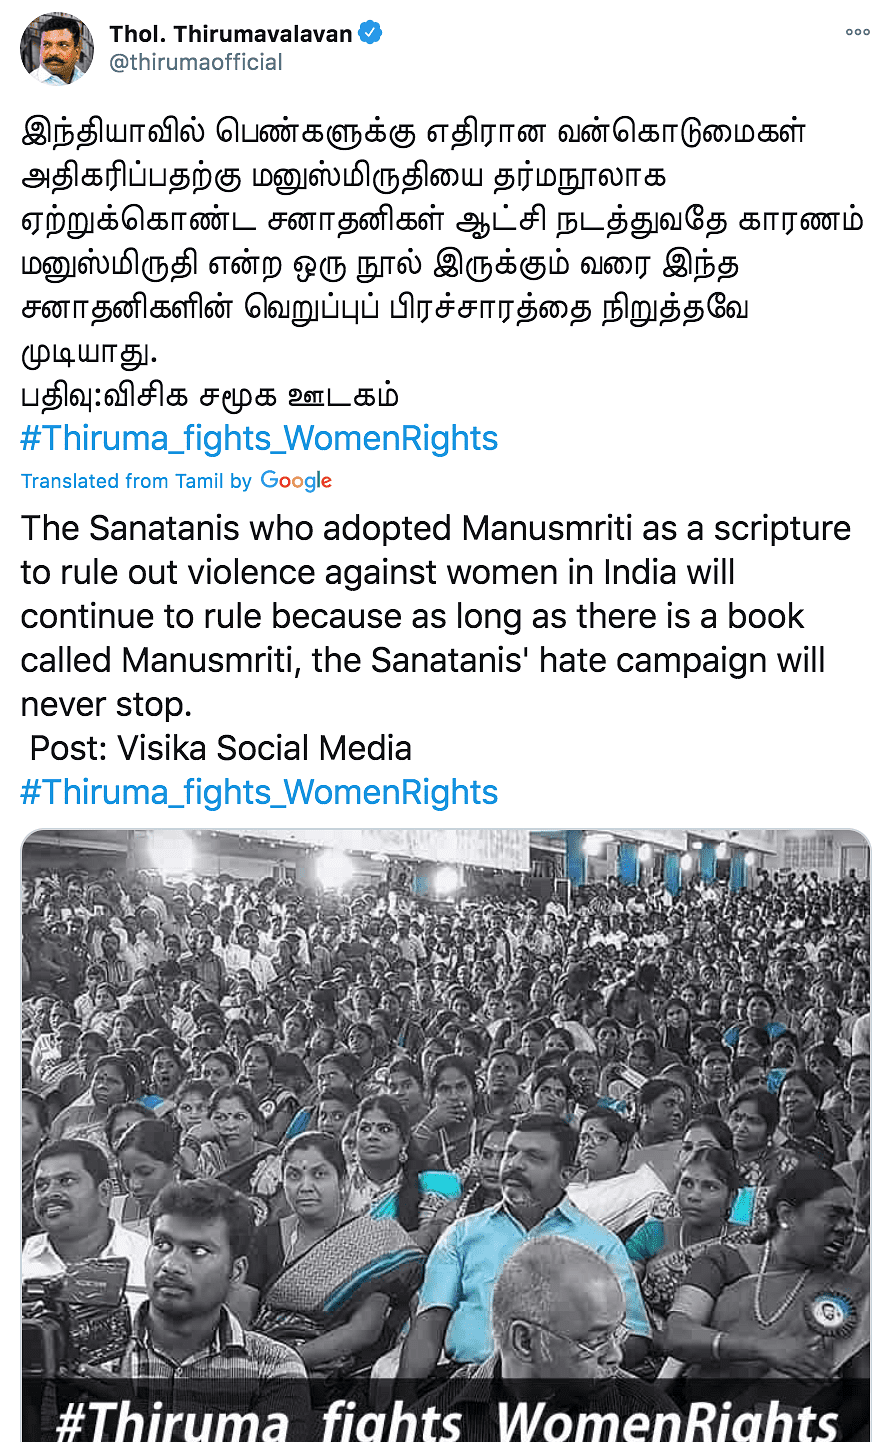 VCK Thirumavalavan has announced state-wide protests against the Manusmriti, calling for its ban in Tamil Nadu.